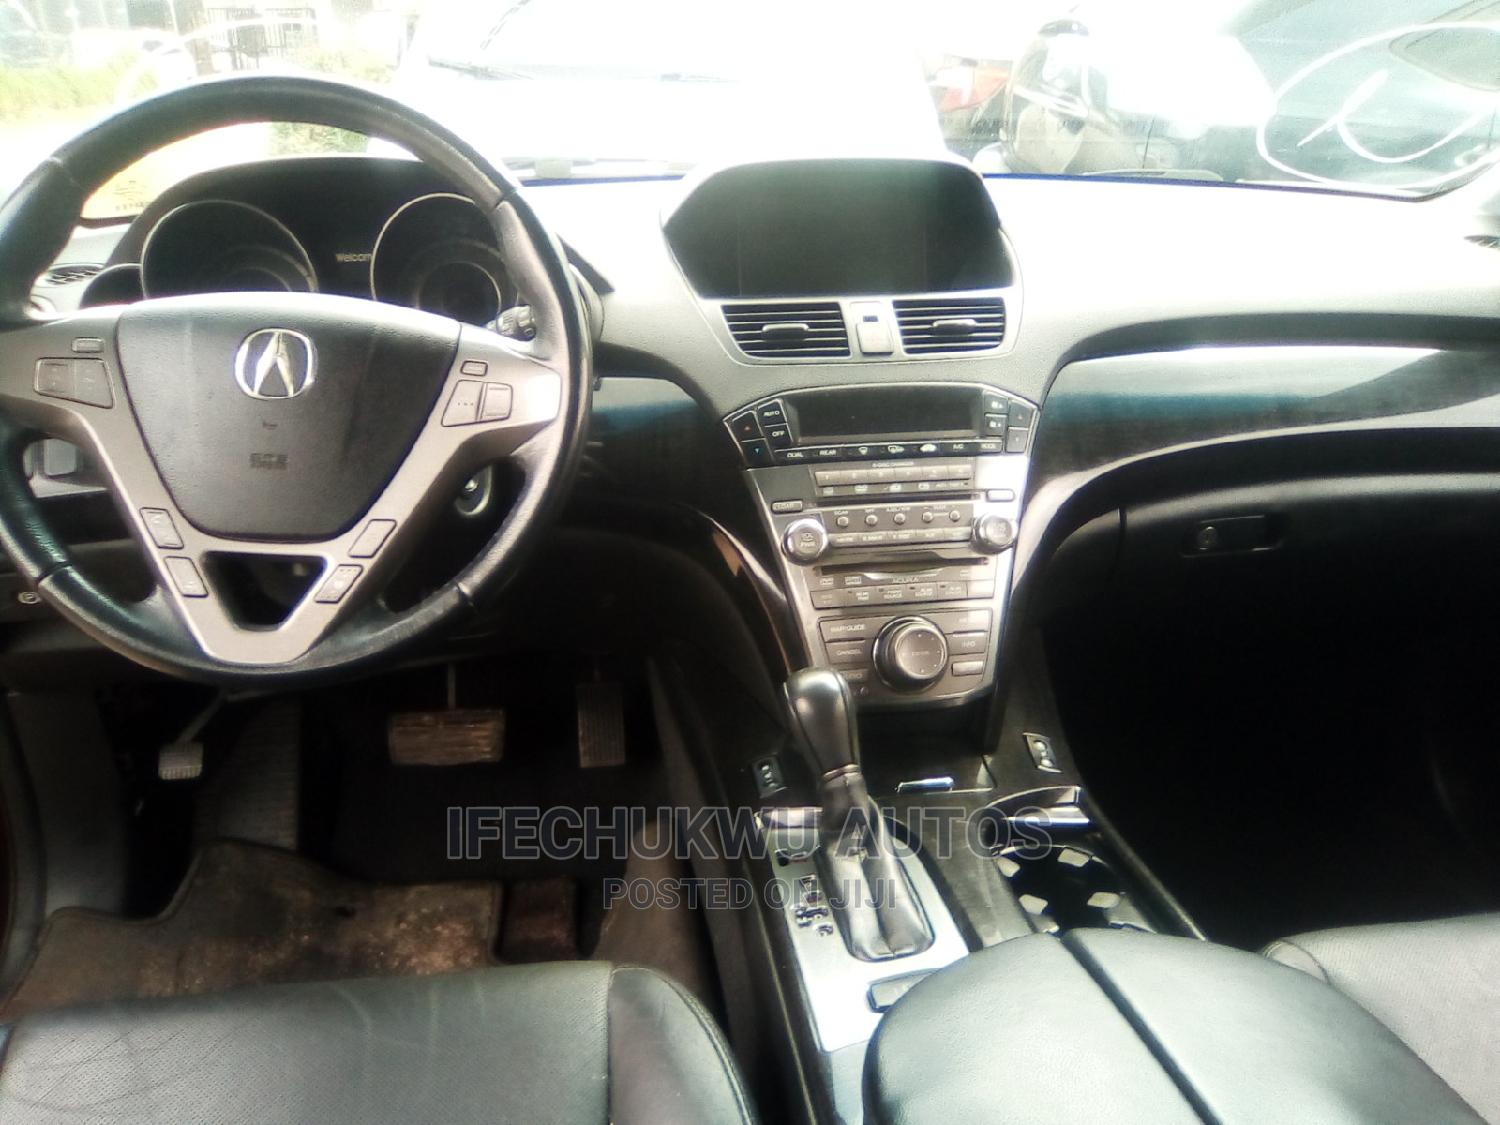 Acura MDX 2009 SUV 4dr AWD (3.7 6cyl 5A) Red | Cars for sale in Ikeja, Lagos State, Nigeria